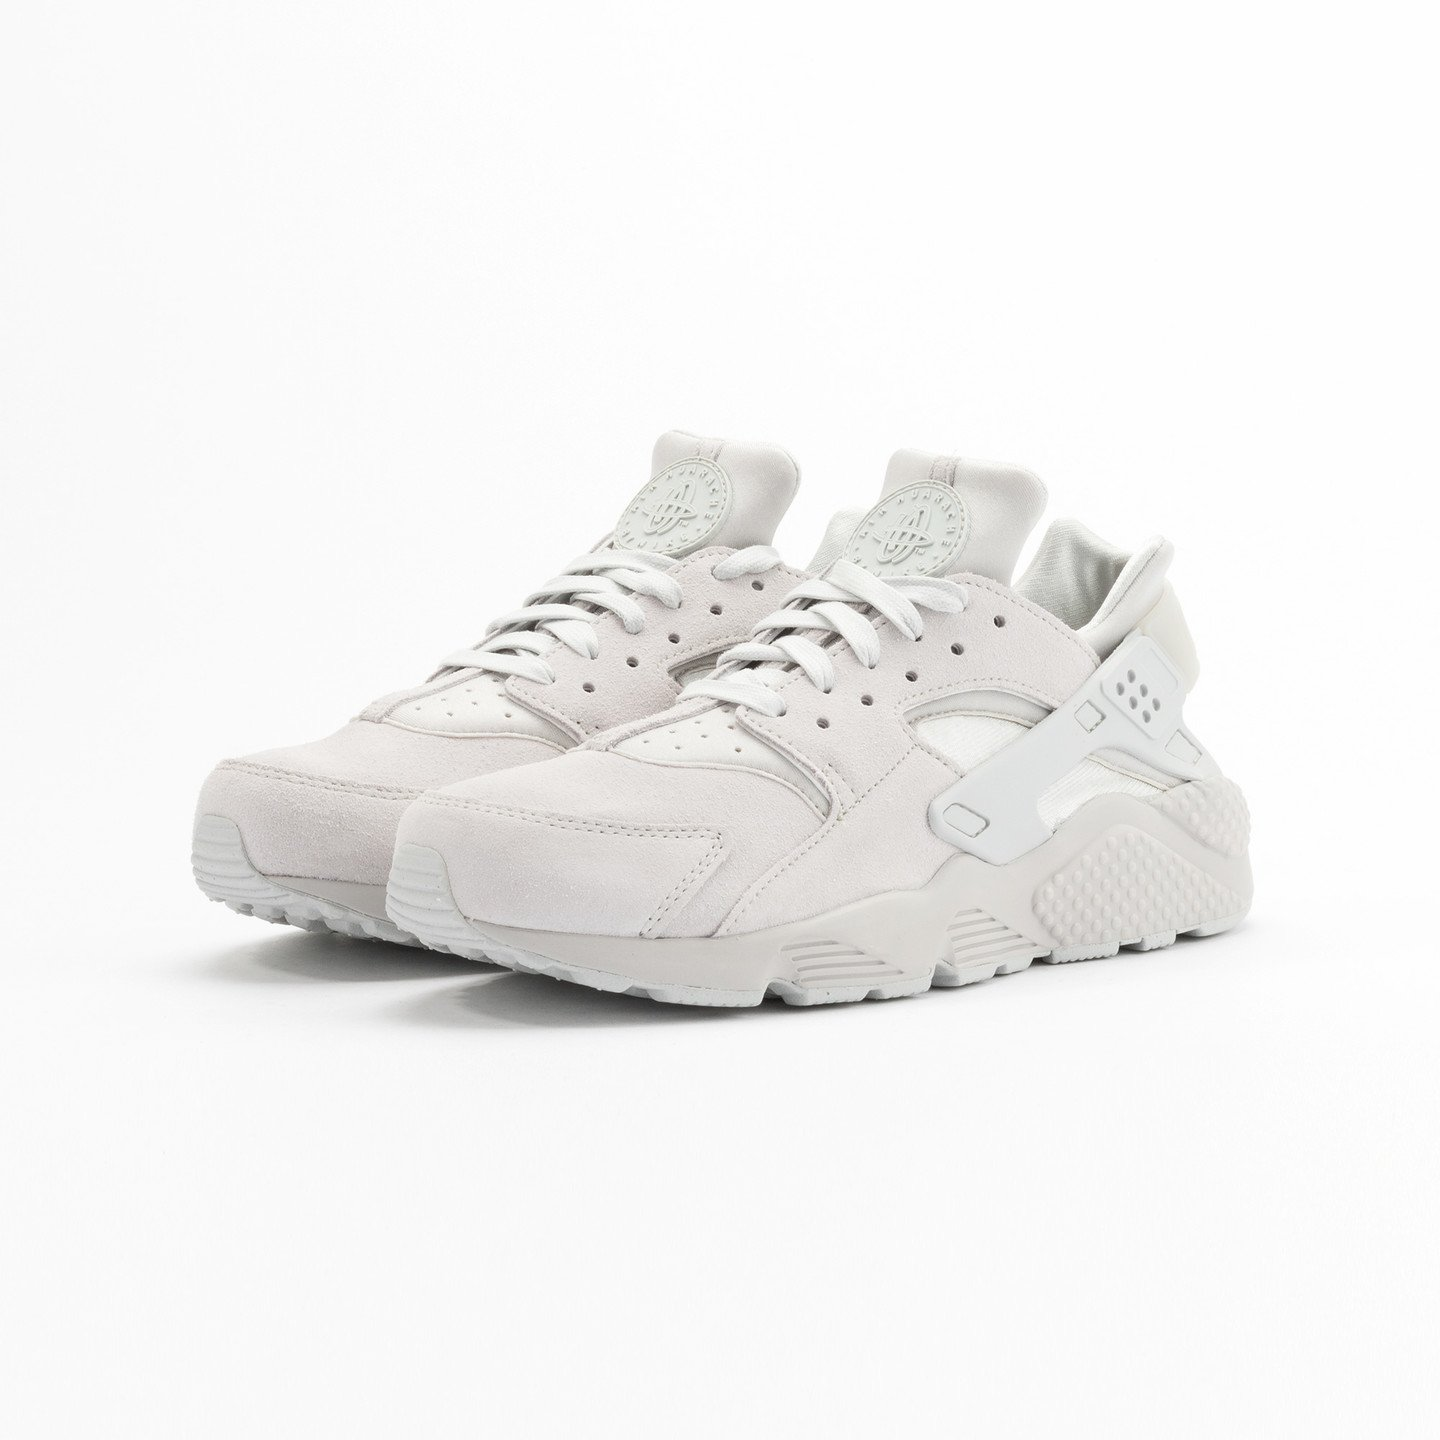 Nike Air Huarache Run Premium Neutral Grey 704830-005-41